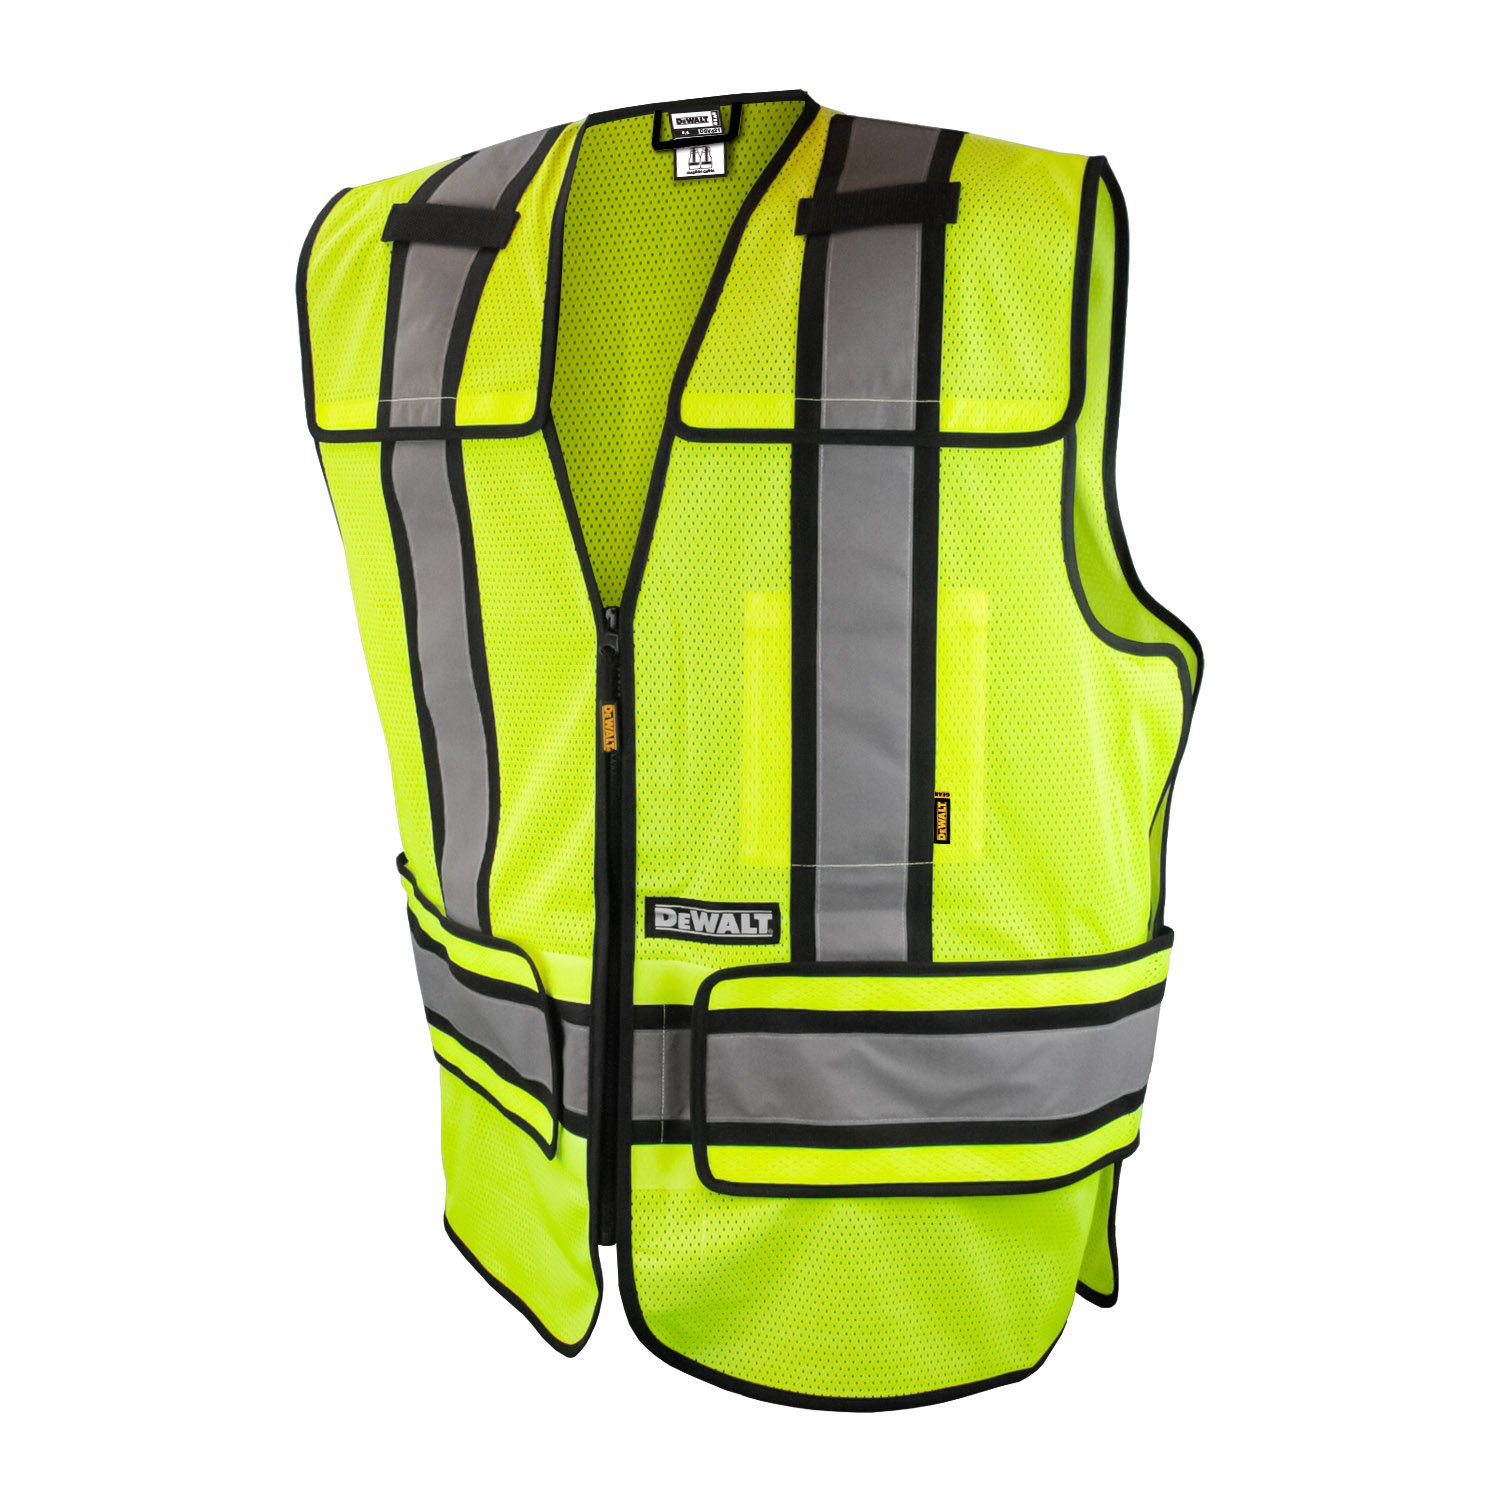 DEWALT DSV421-S/XL Class 2 Adjustable Breakaway Vest, Medium